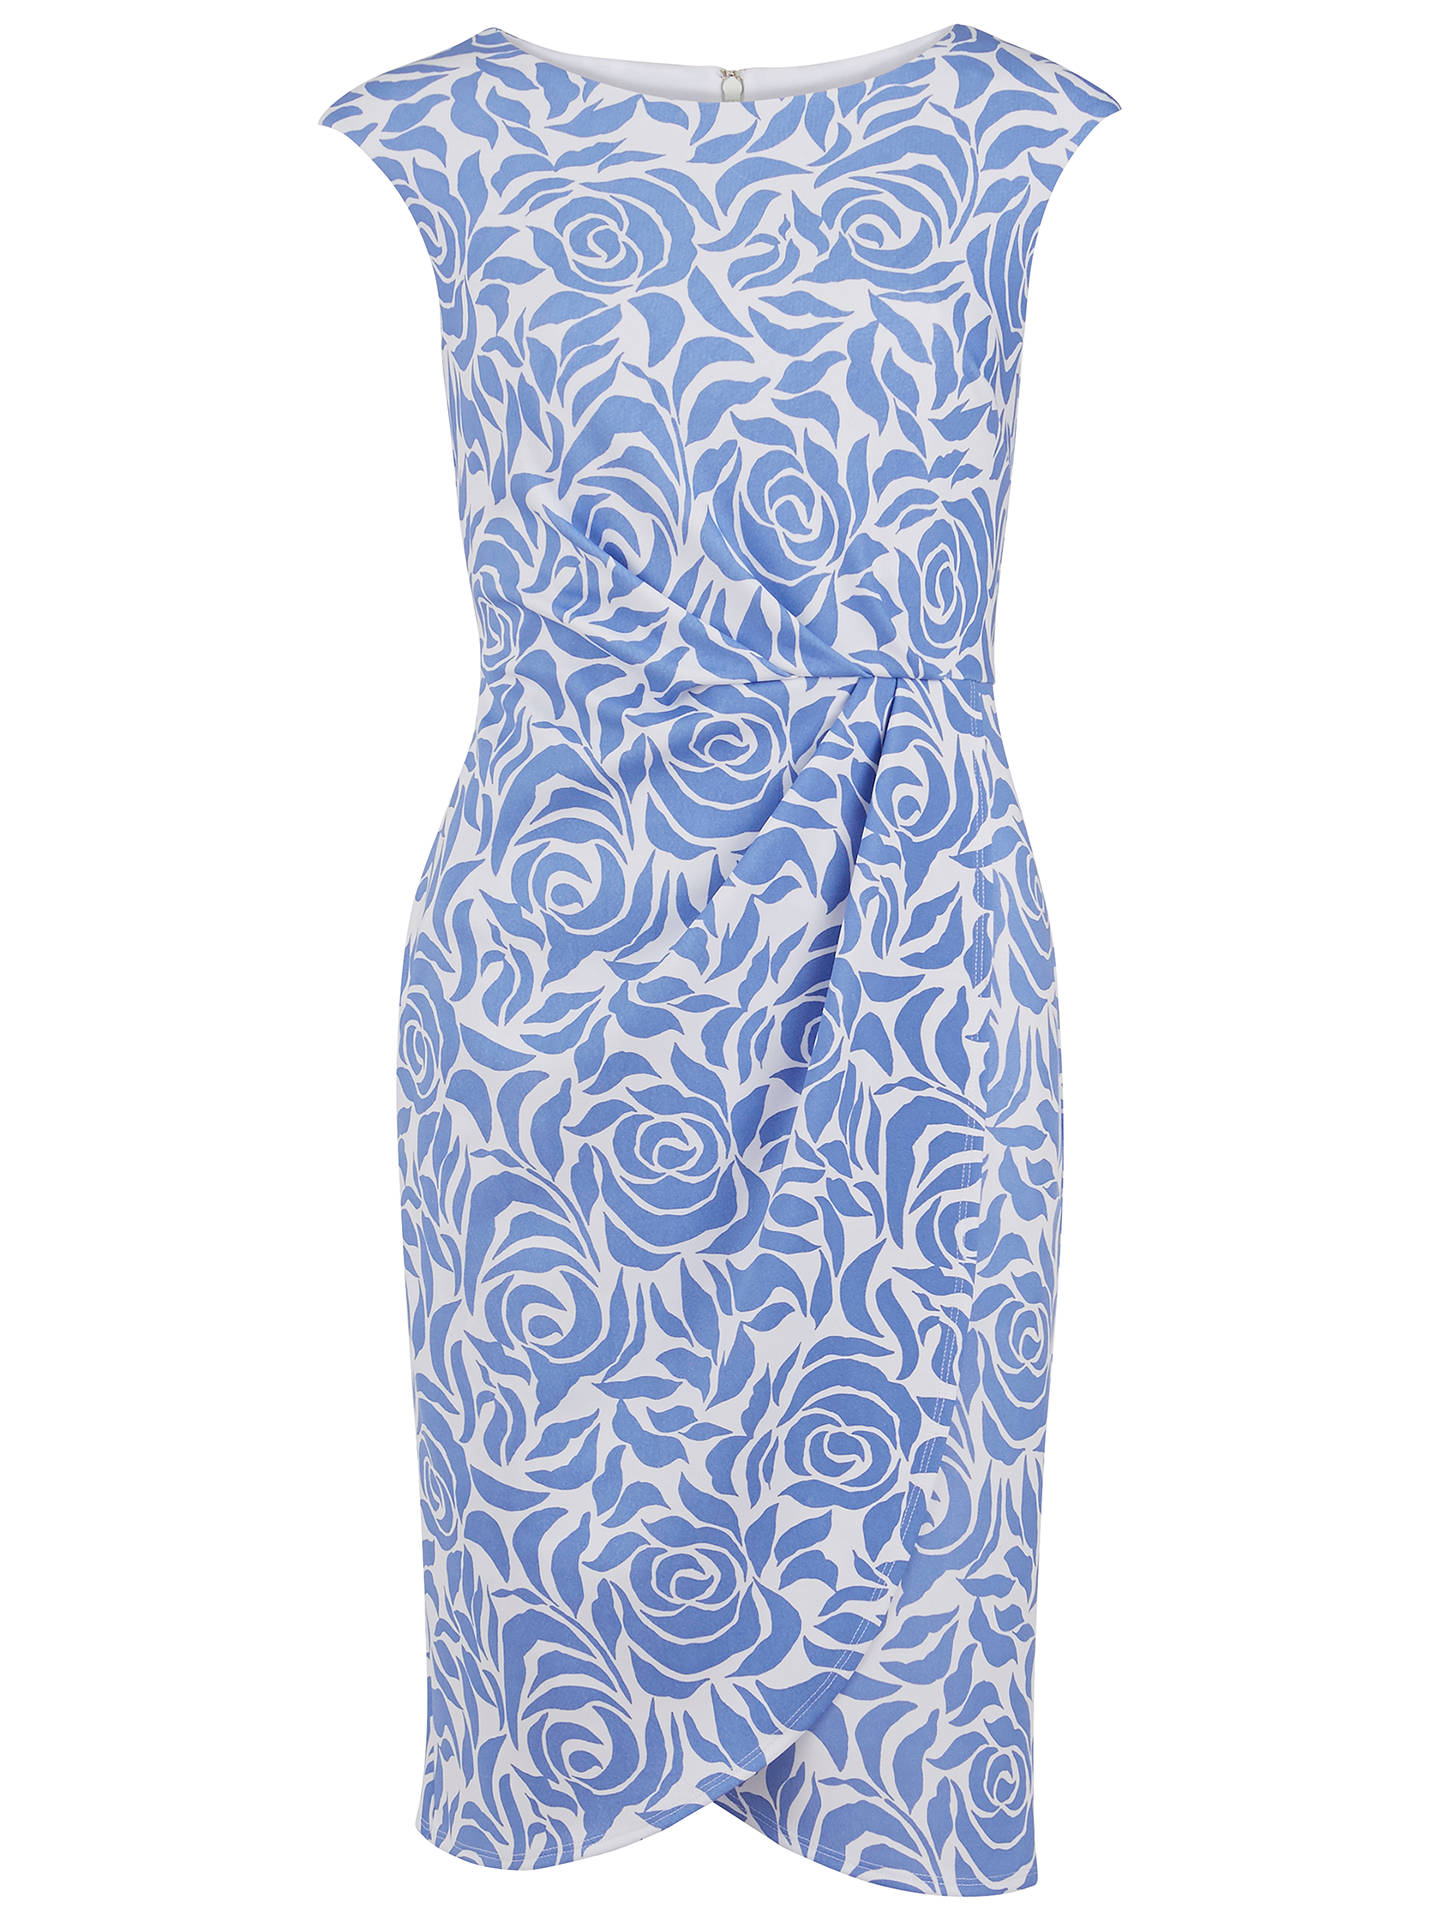 77910dca8 Buy Gina Bacconi Printed Scuba Wrap Dress, Perri, 8 Online at johnlewis.com  ...